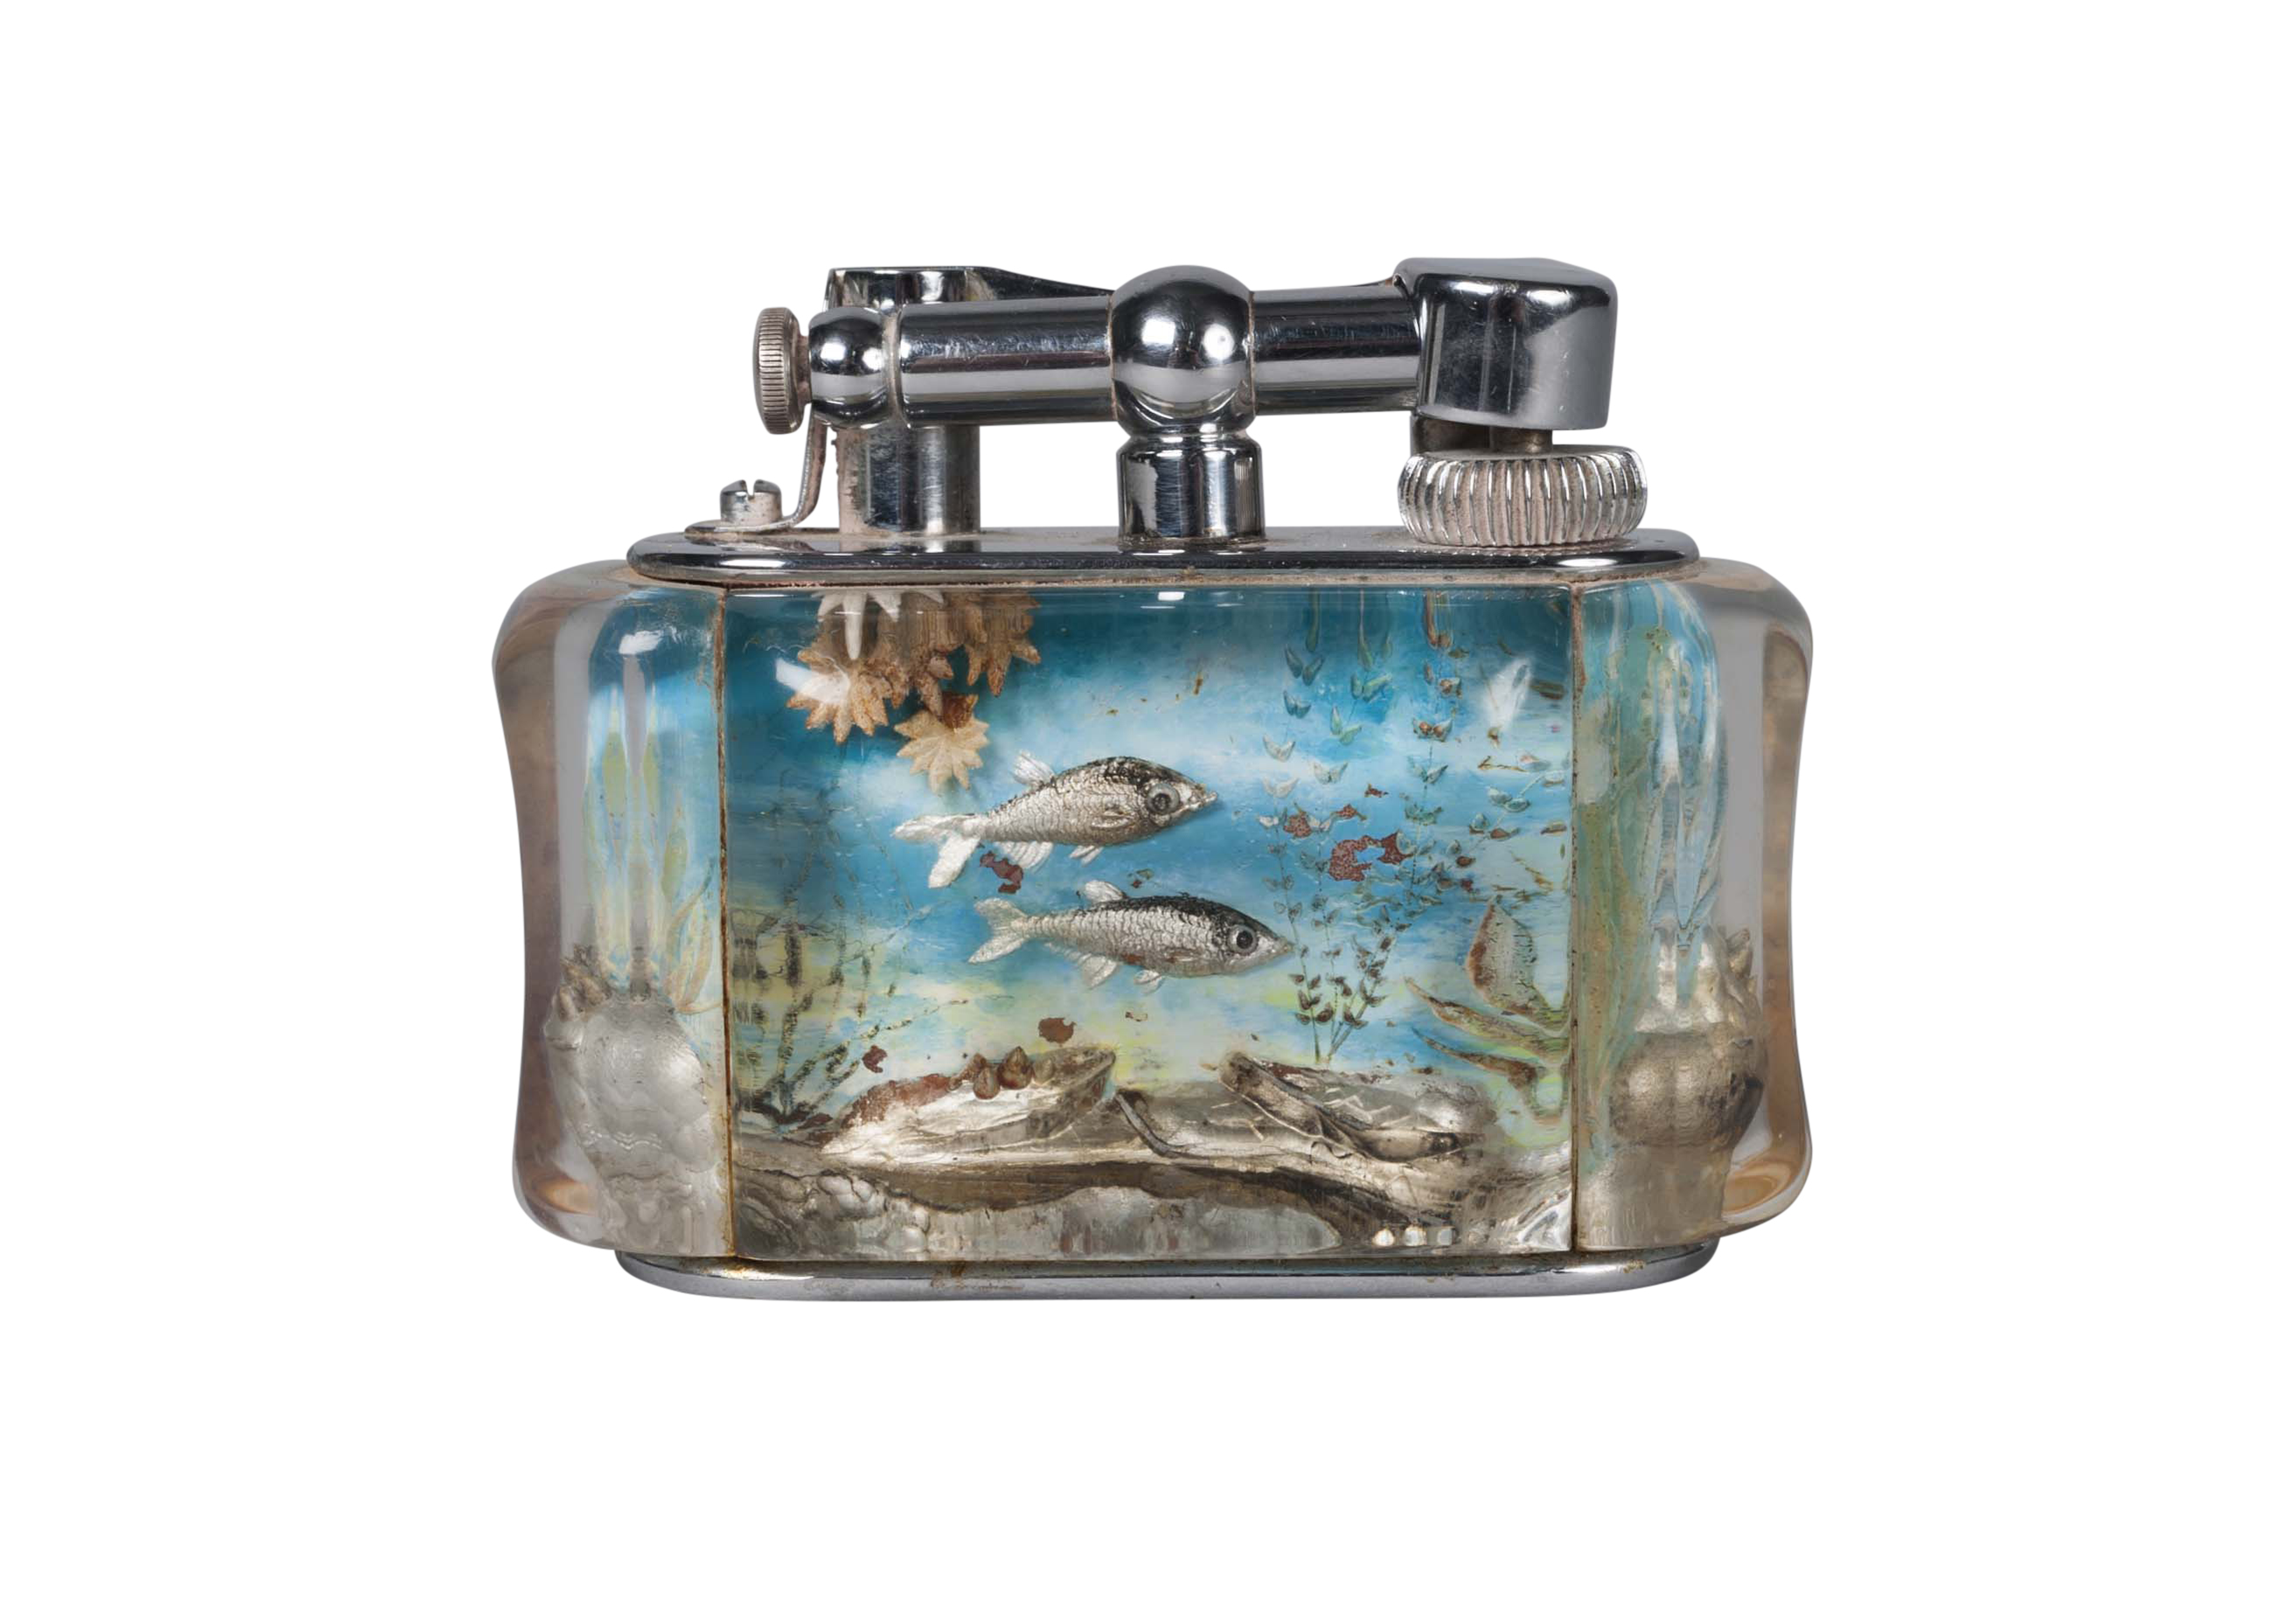 Lot 141 - Dunhill, an Aquarium table lighter 2nd Quarter 20th Century, reg. no. 737418, stamped maker's mark